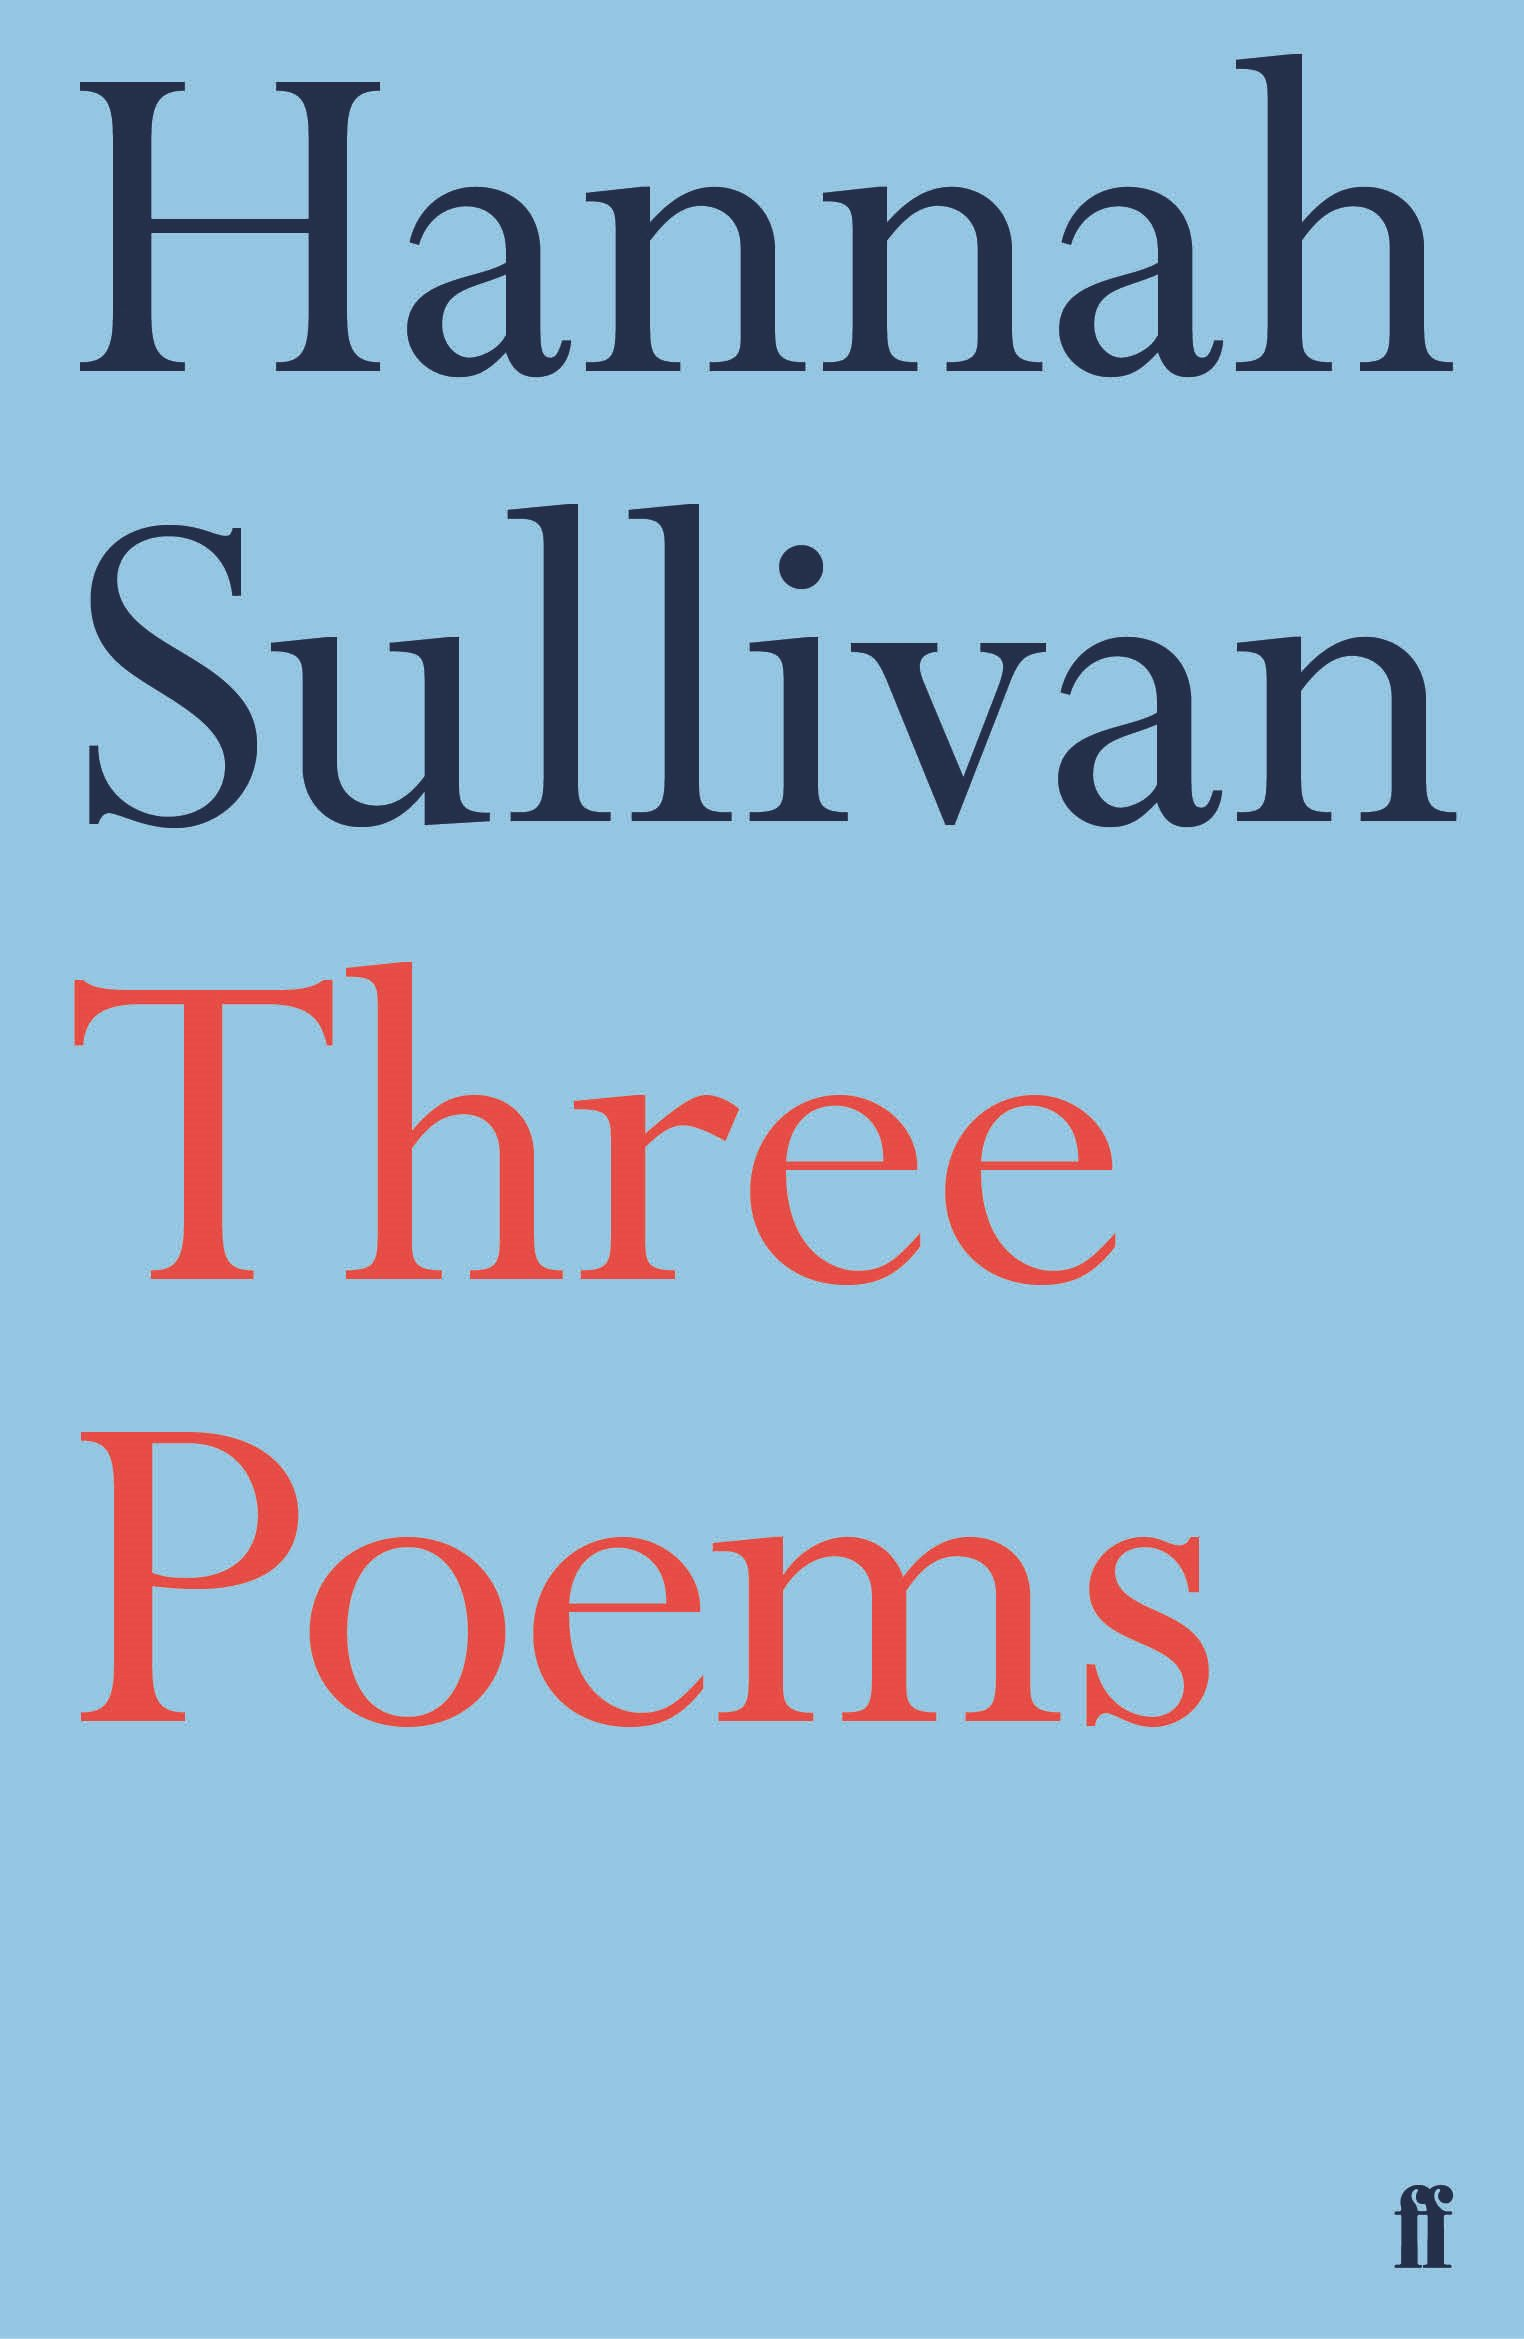 Hannah Sullivan, Three Poems. Courtesy Faber & Faber